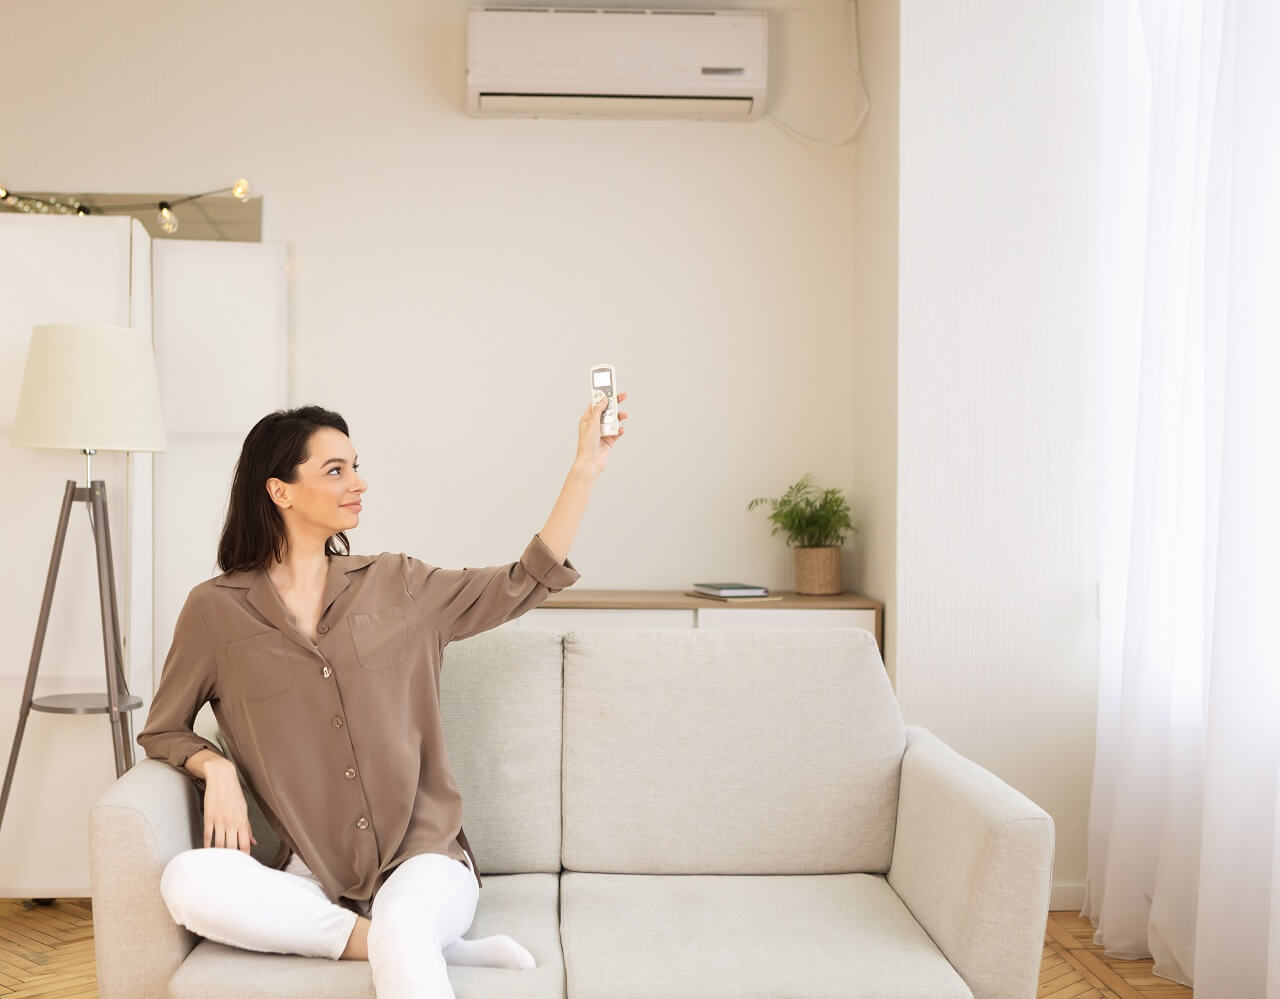 woman switching air con temperature